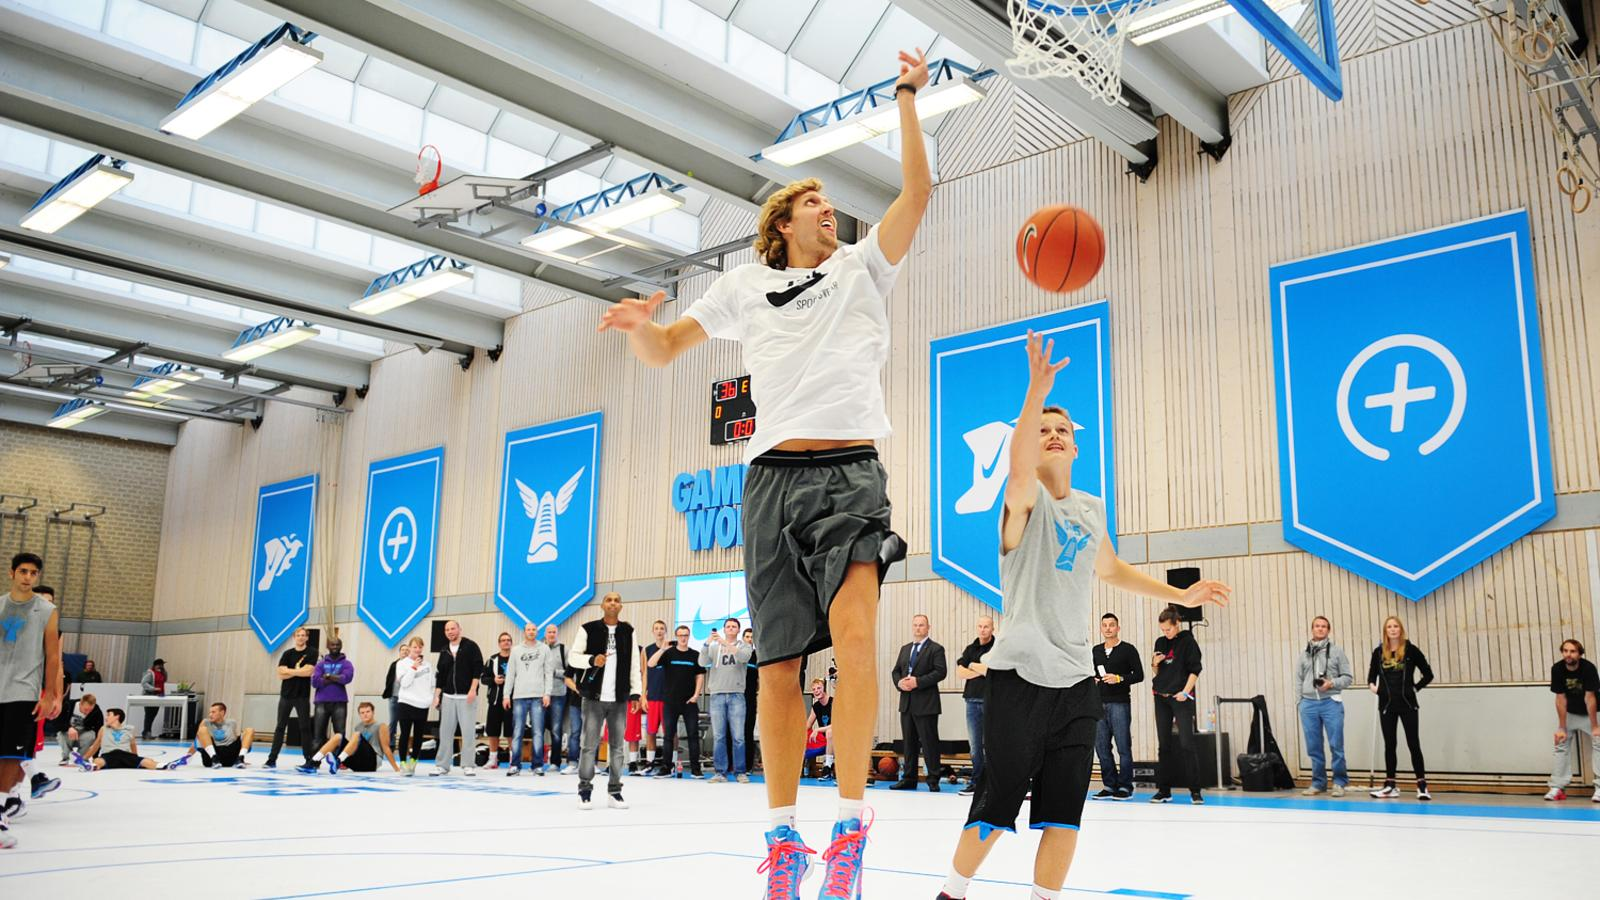 Dirk_Nowitzki_Berlin5on5c